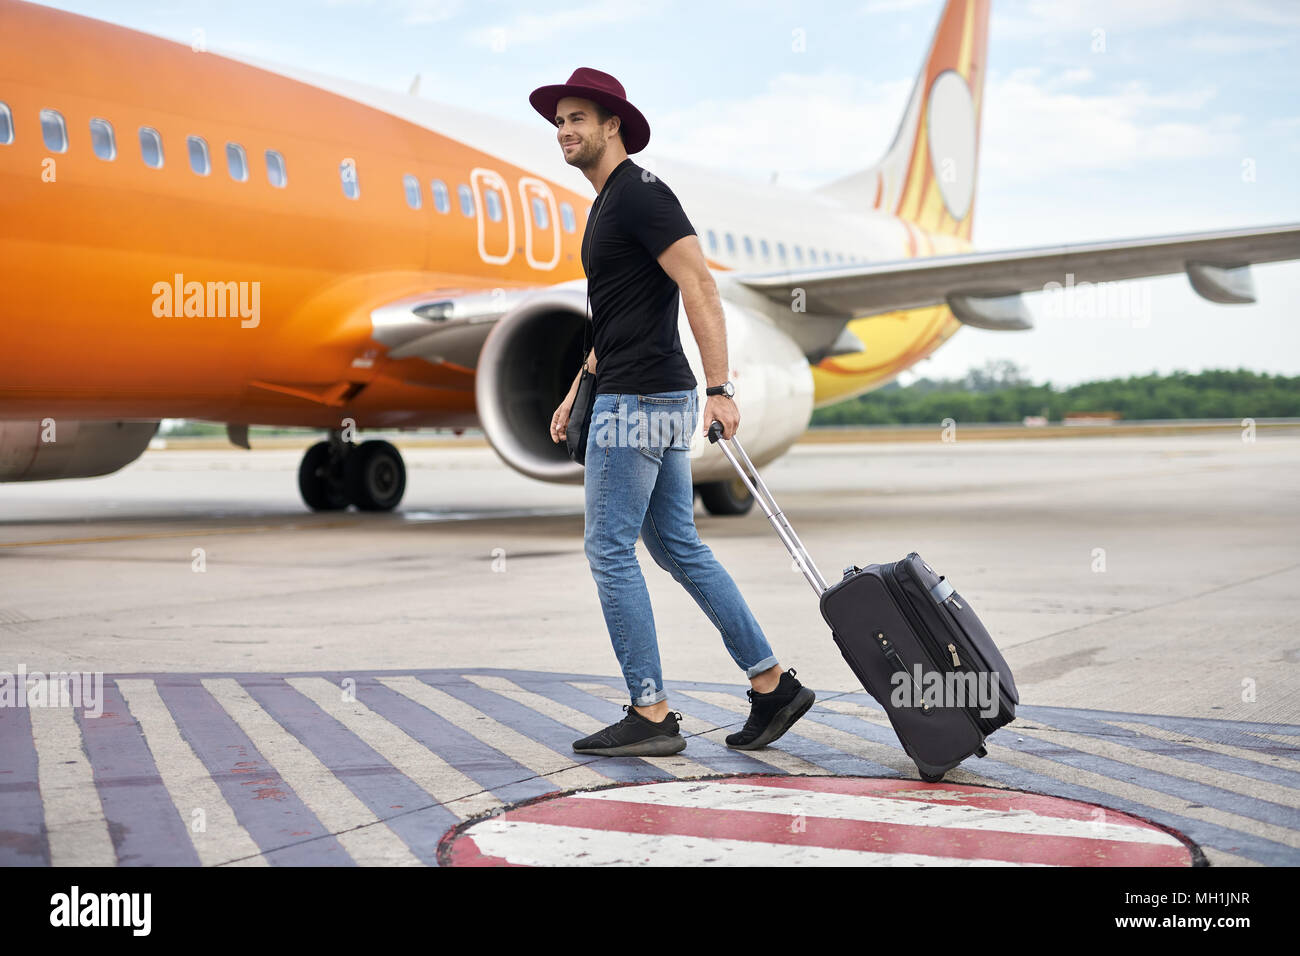 Young guy in airport - Stock Image